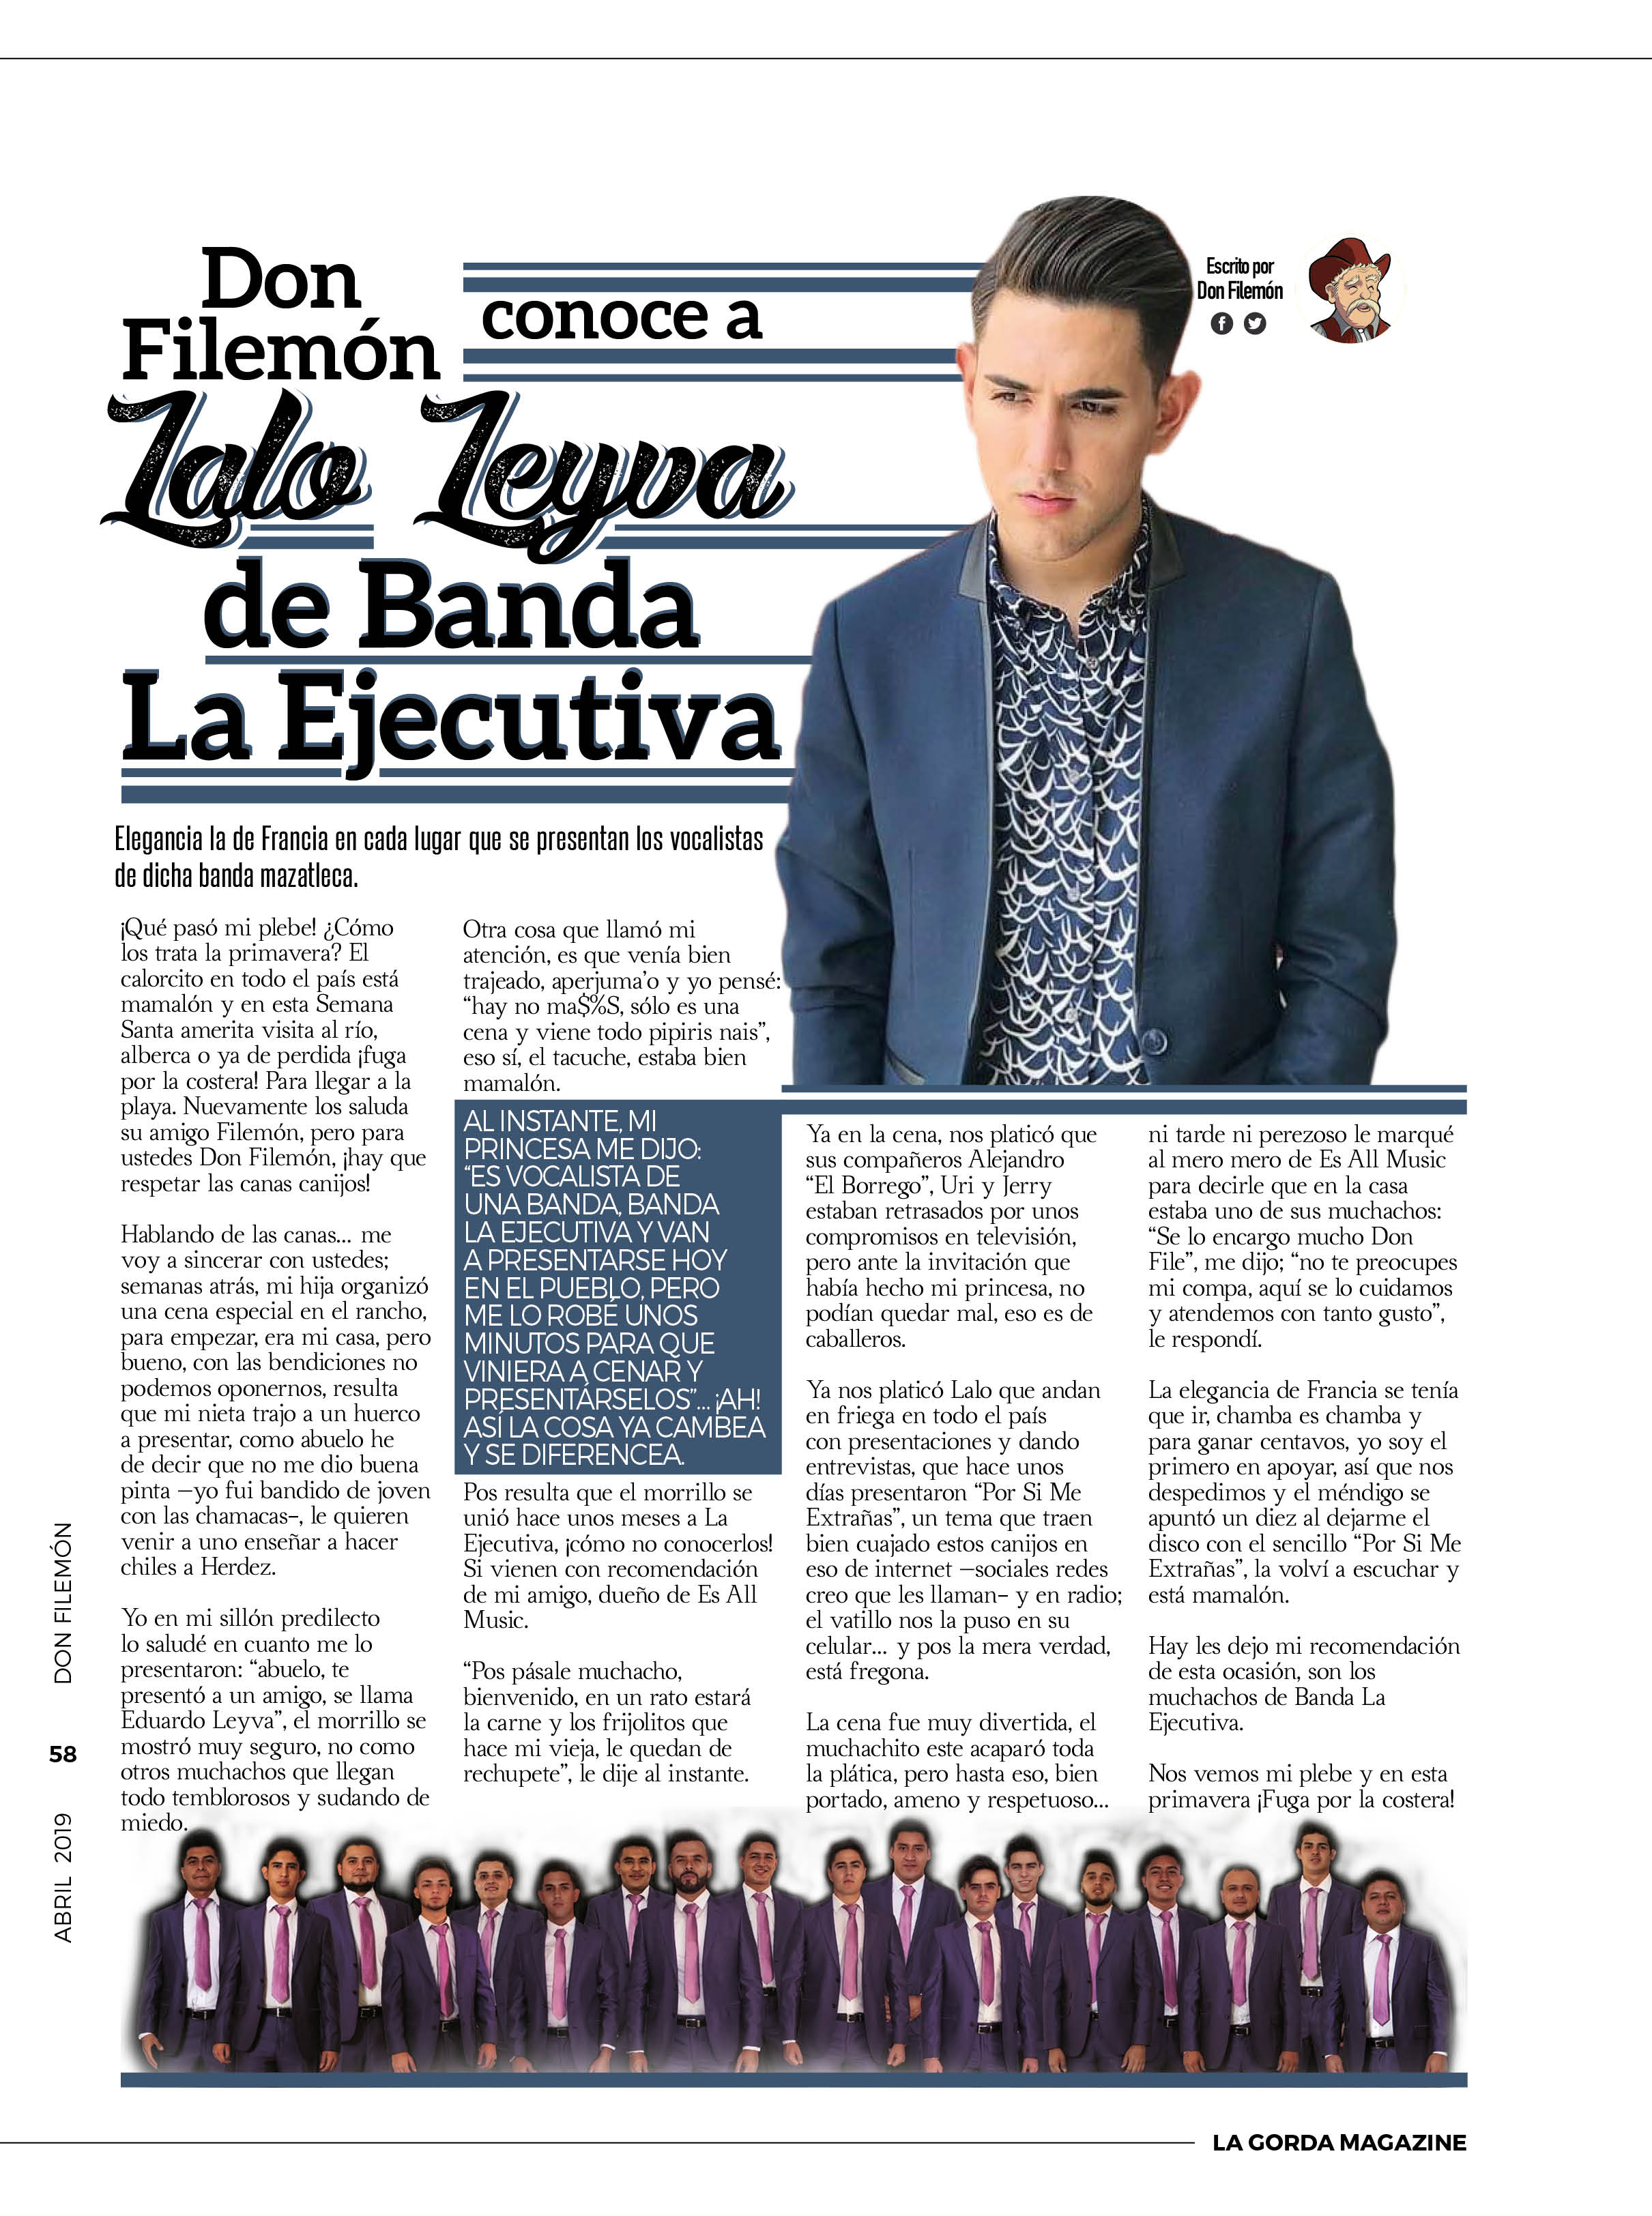 Don Filemón - Eduardo Leyva